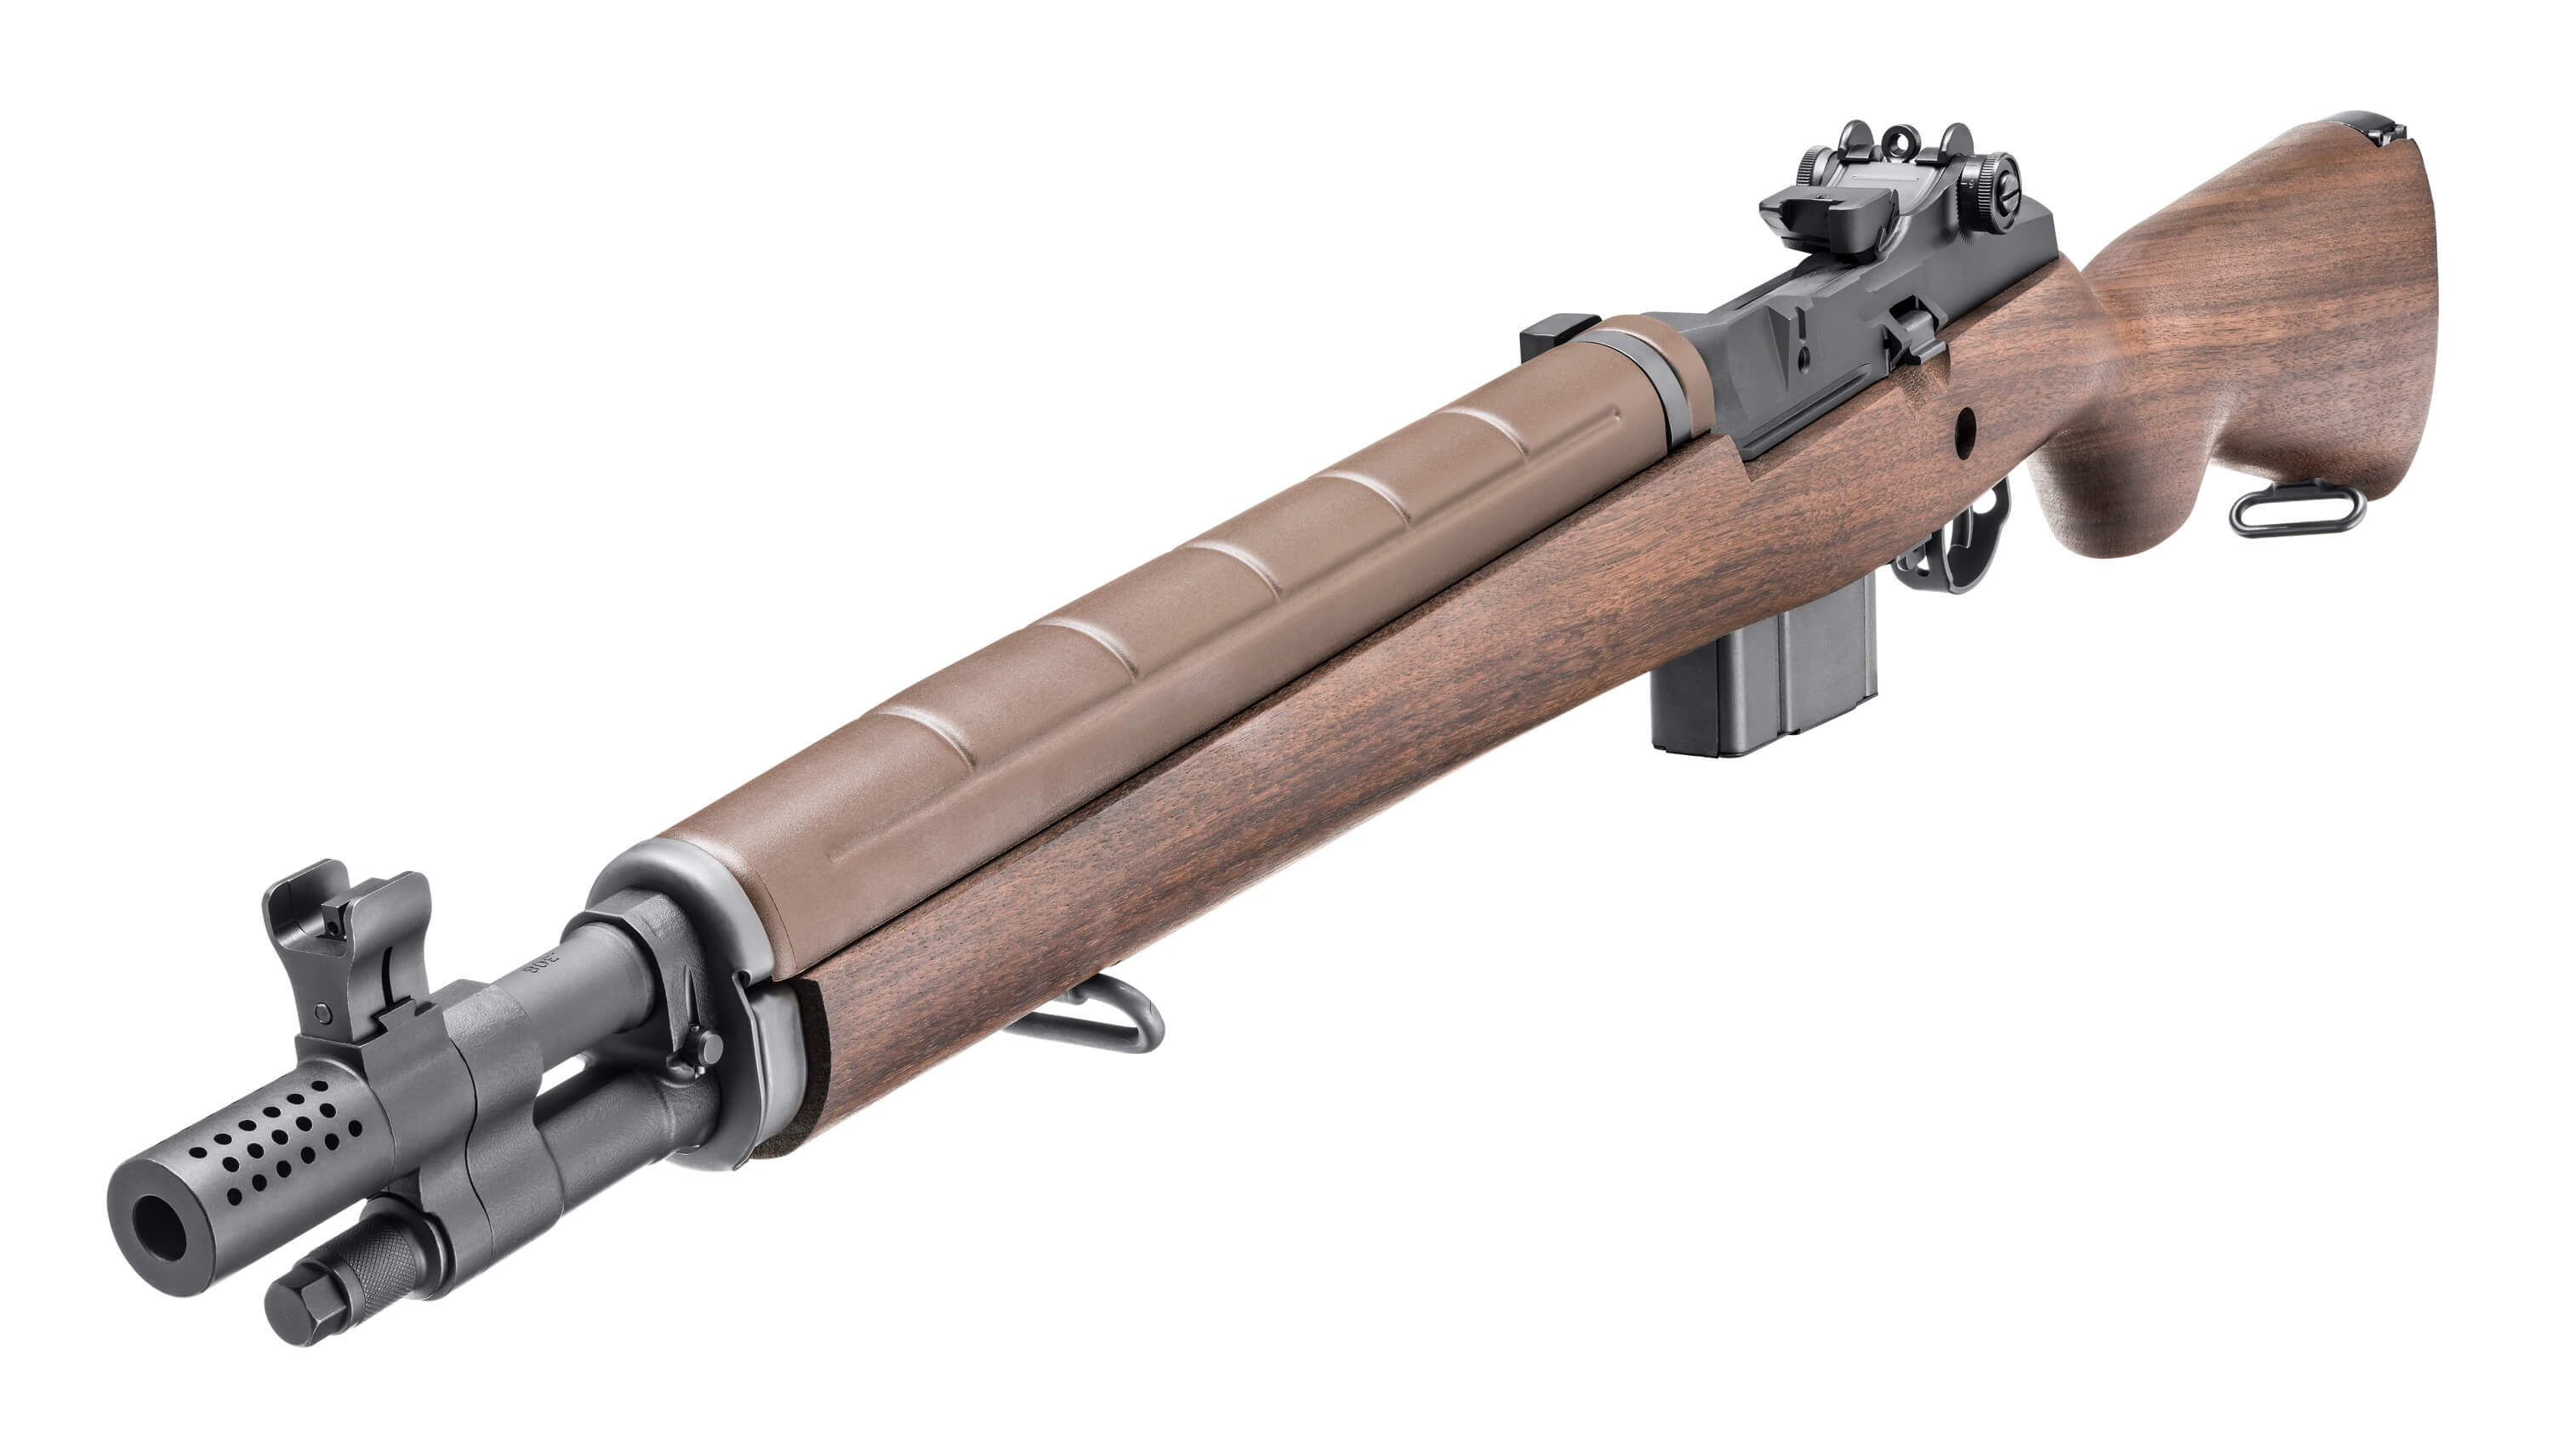 Springfield Armory Announces 'Tanker' M1A